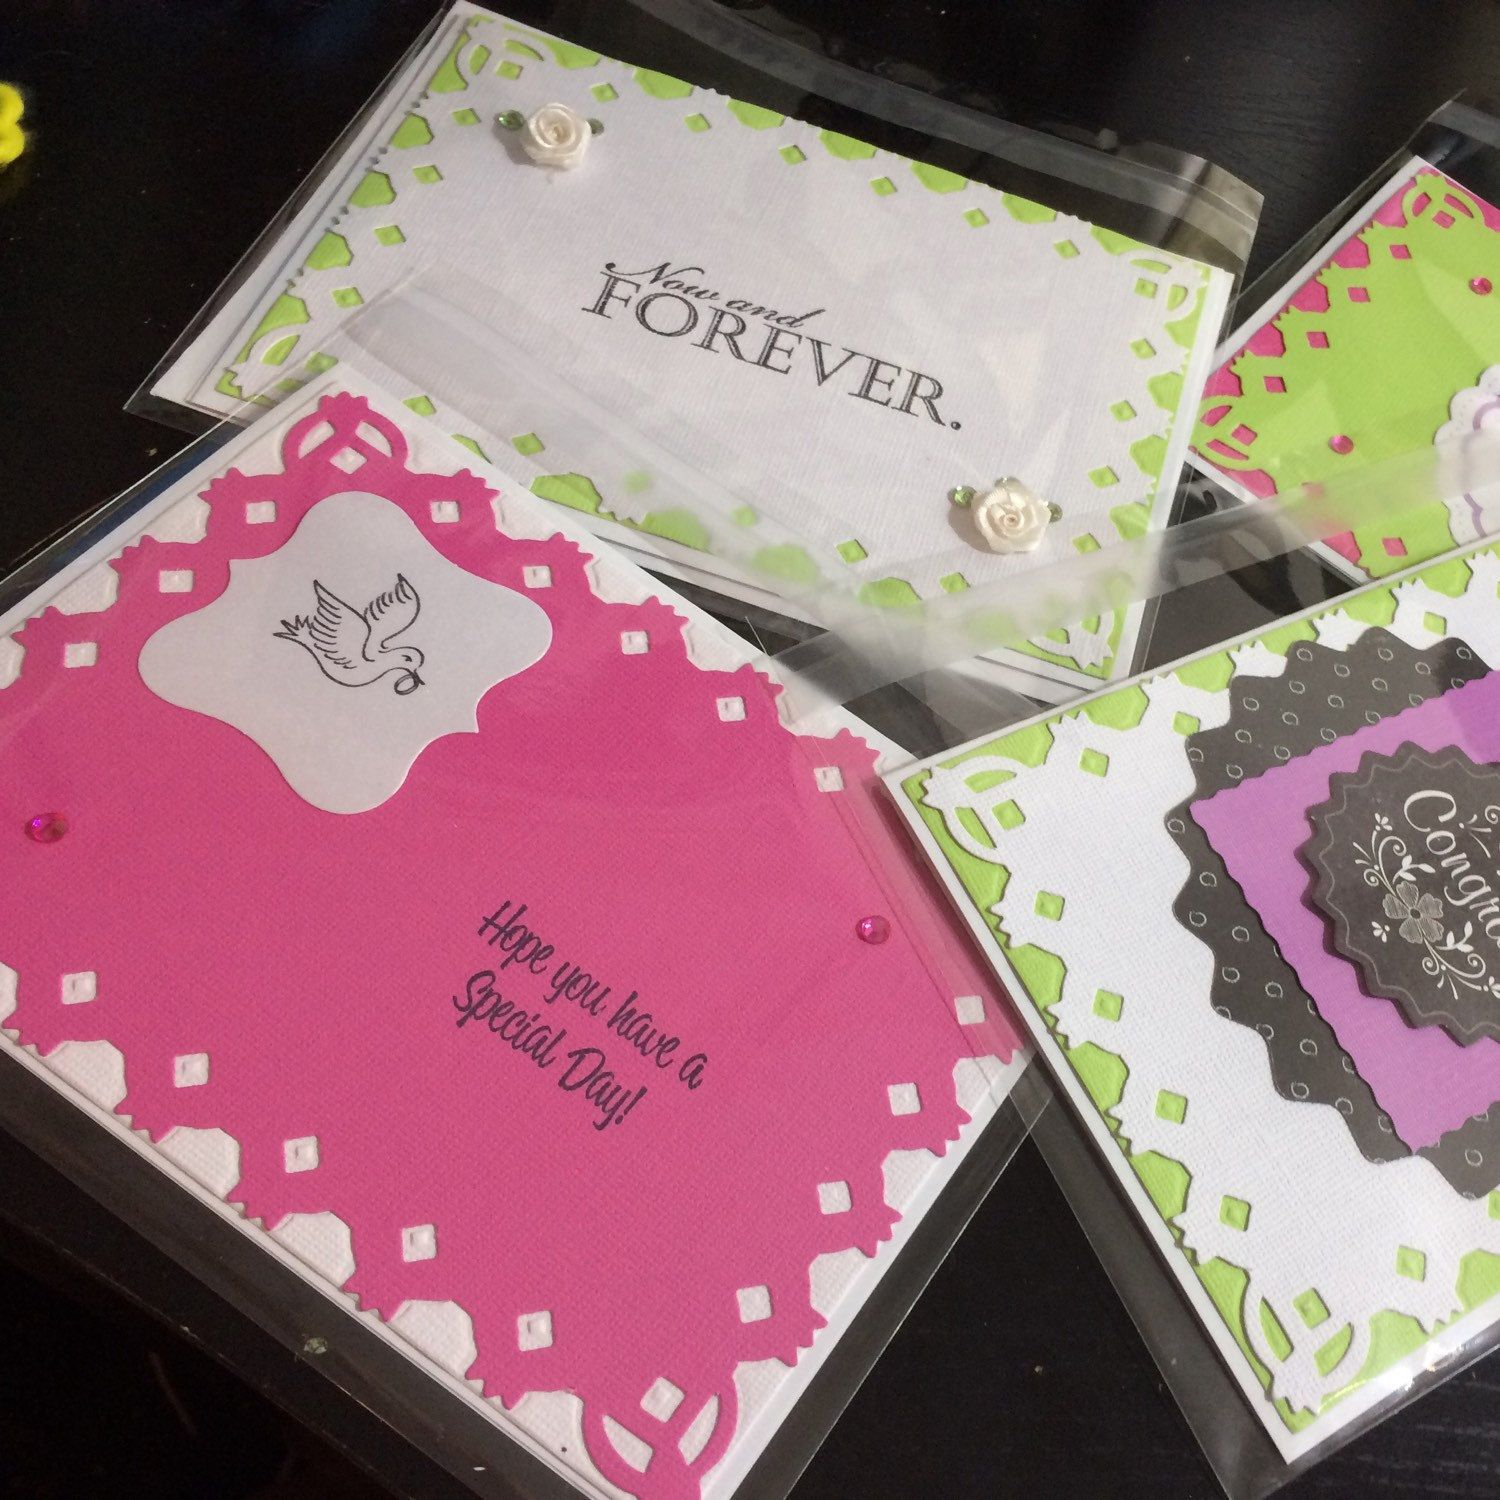 Wedding cards are now available! Brighten their day, the handcrafted way!